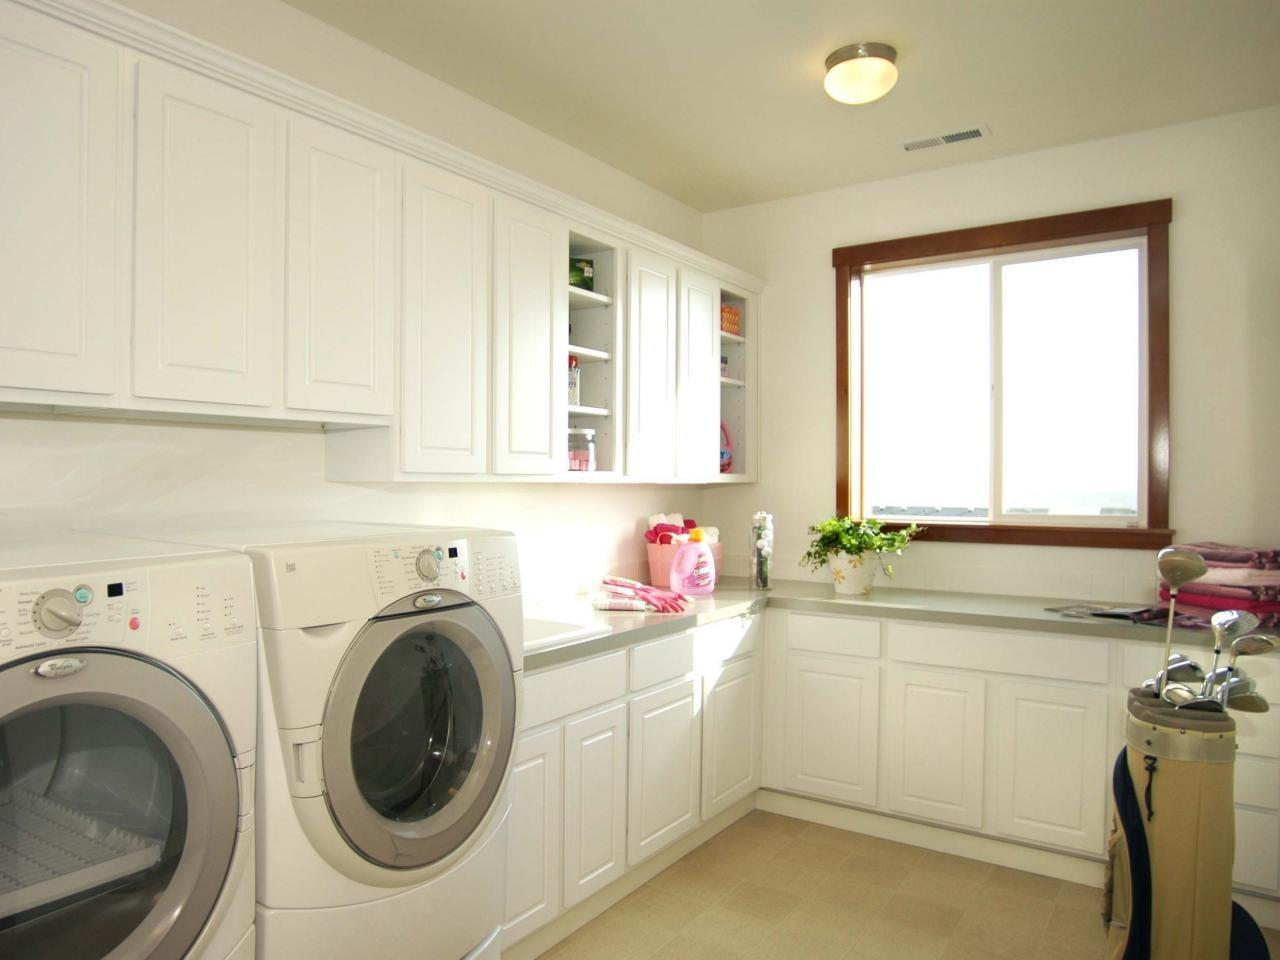 Dry Comfy Laundry Room Get Your Set Clothes Neatly